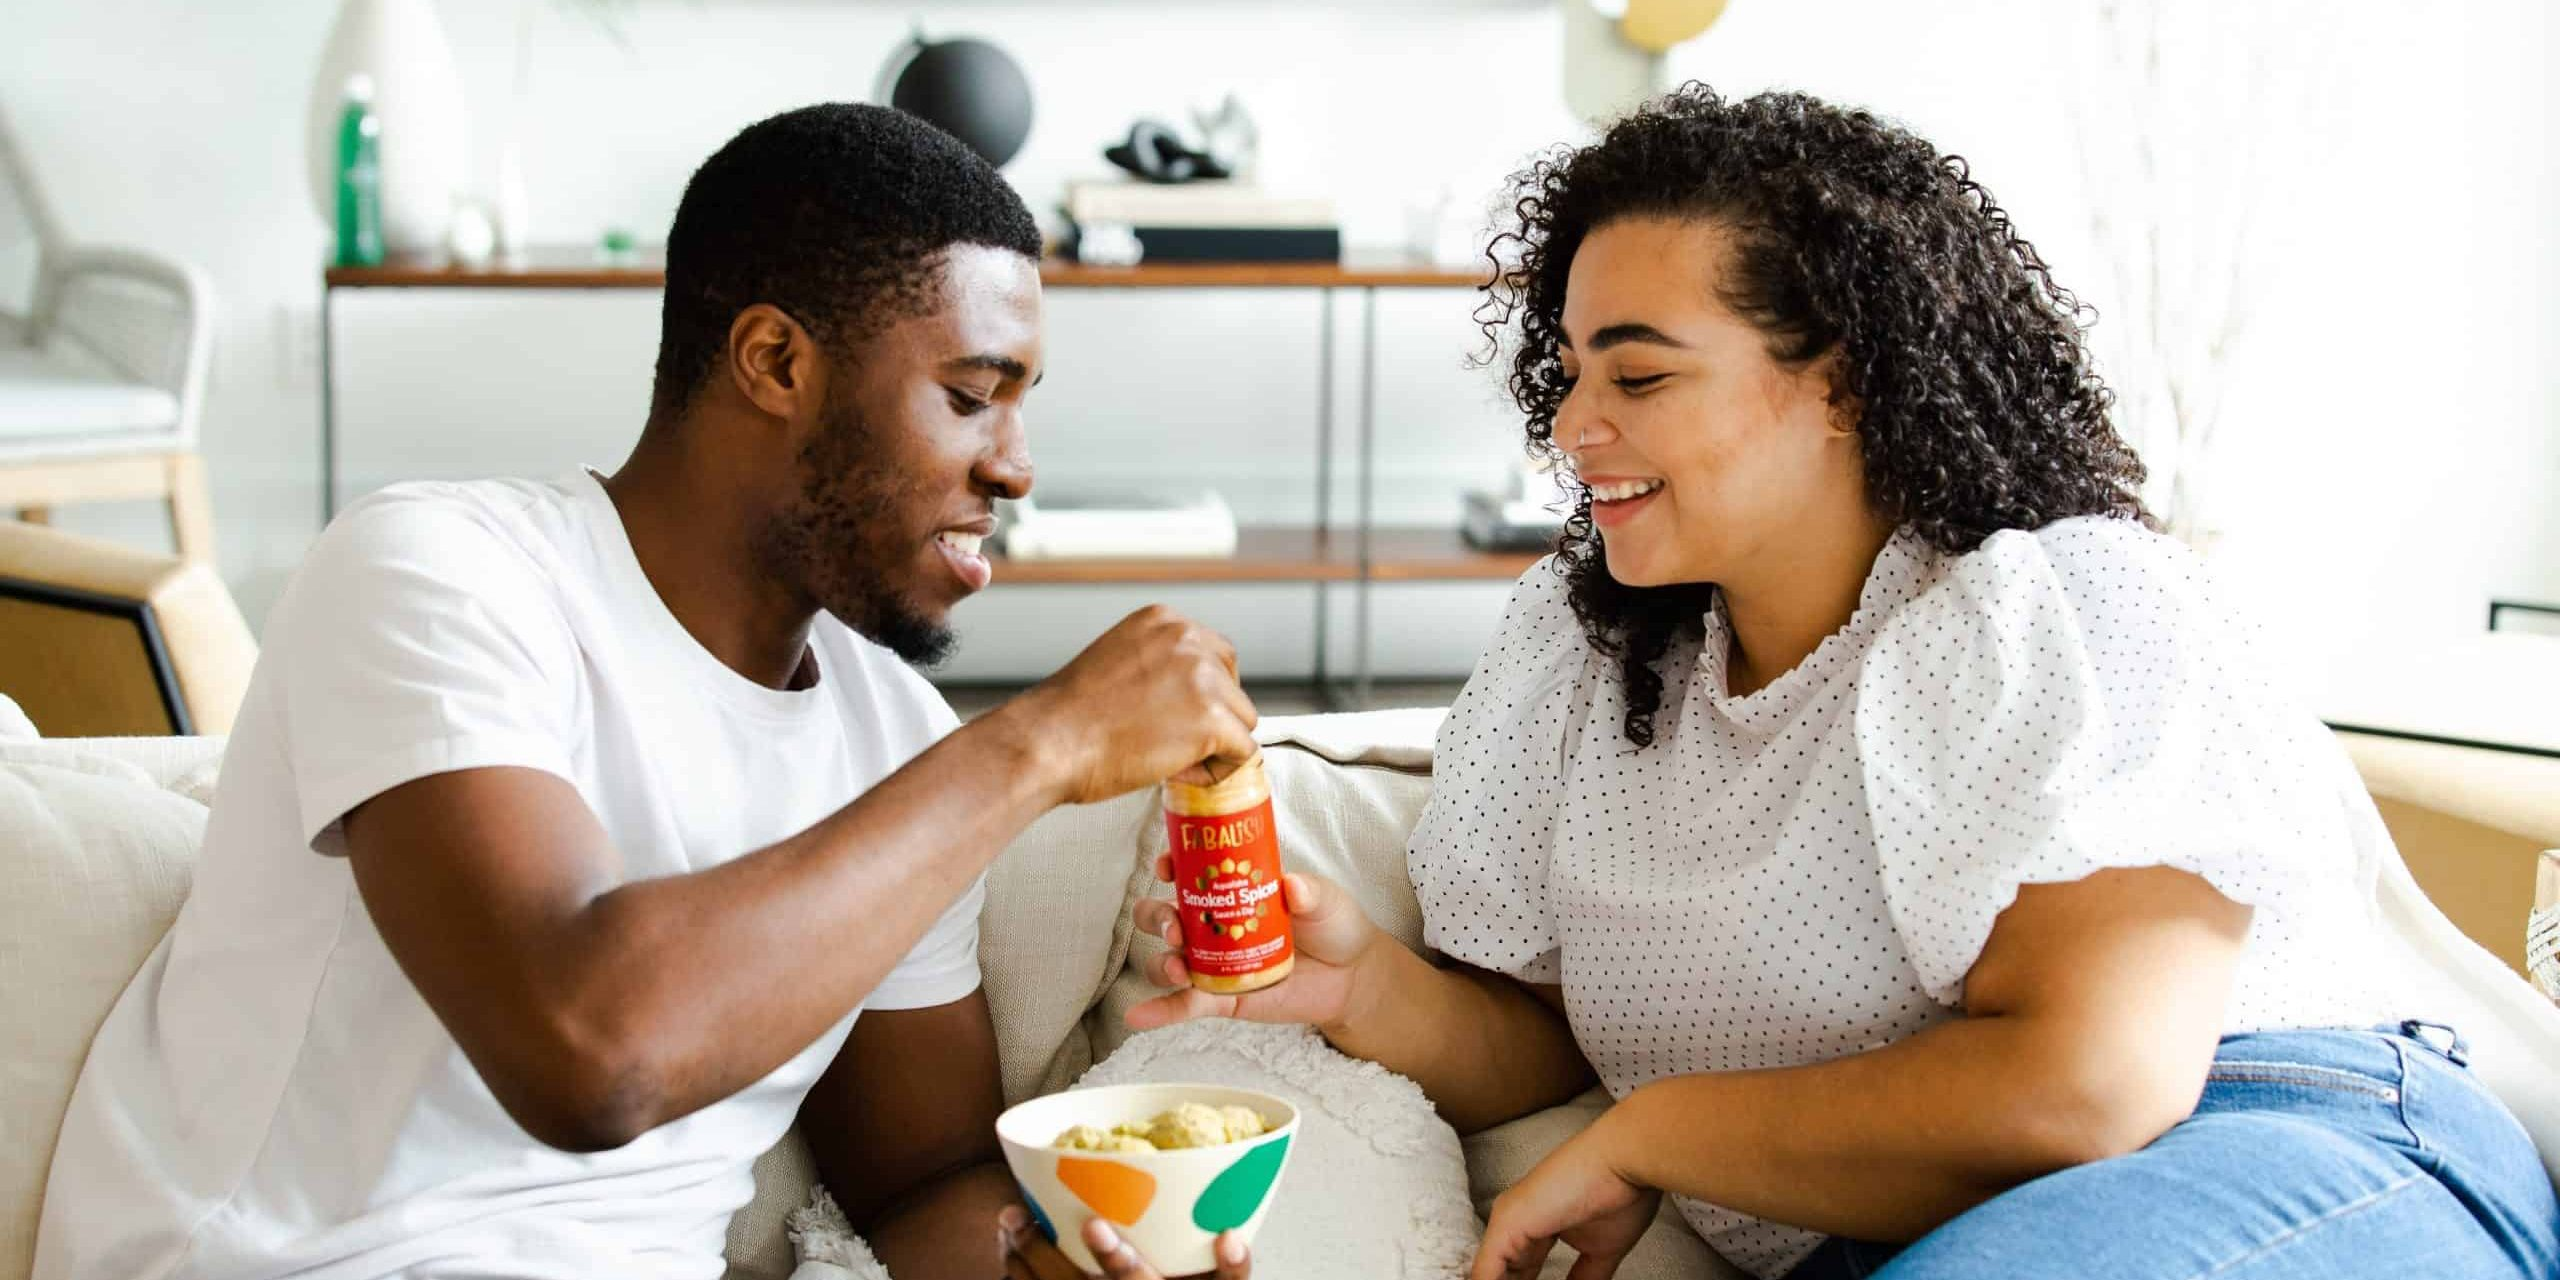 Two person Eating Snacks